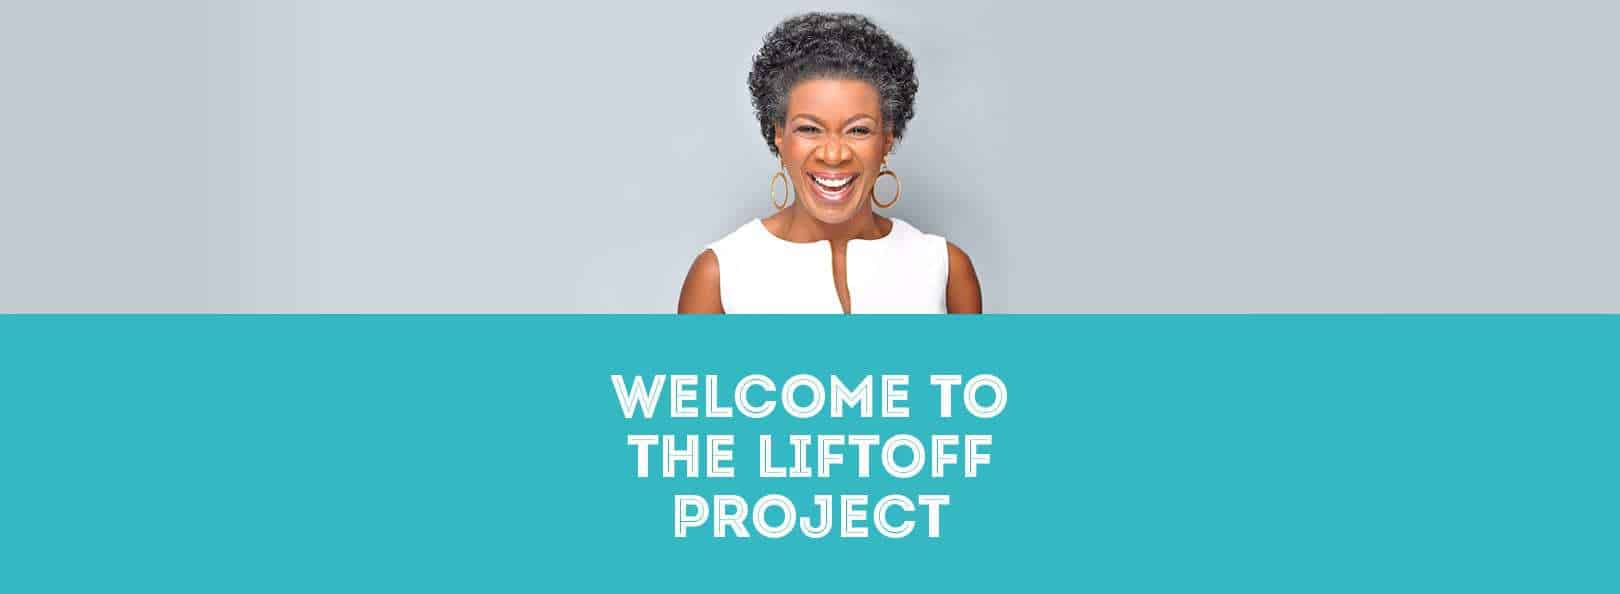 Welcome to The LiftOff Project with Coach Pamela!